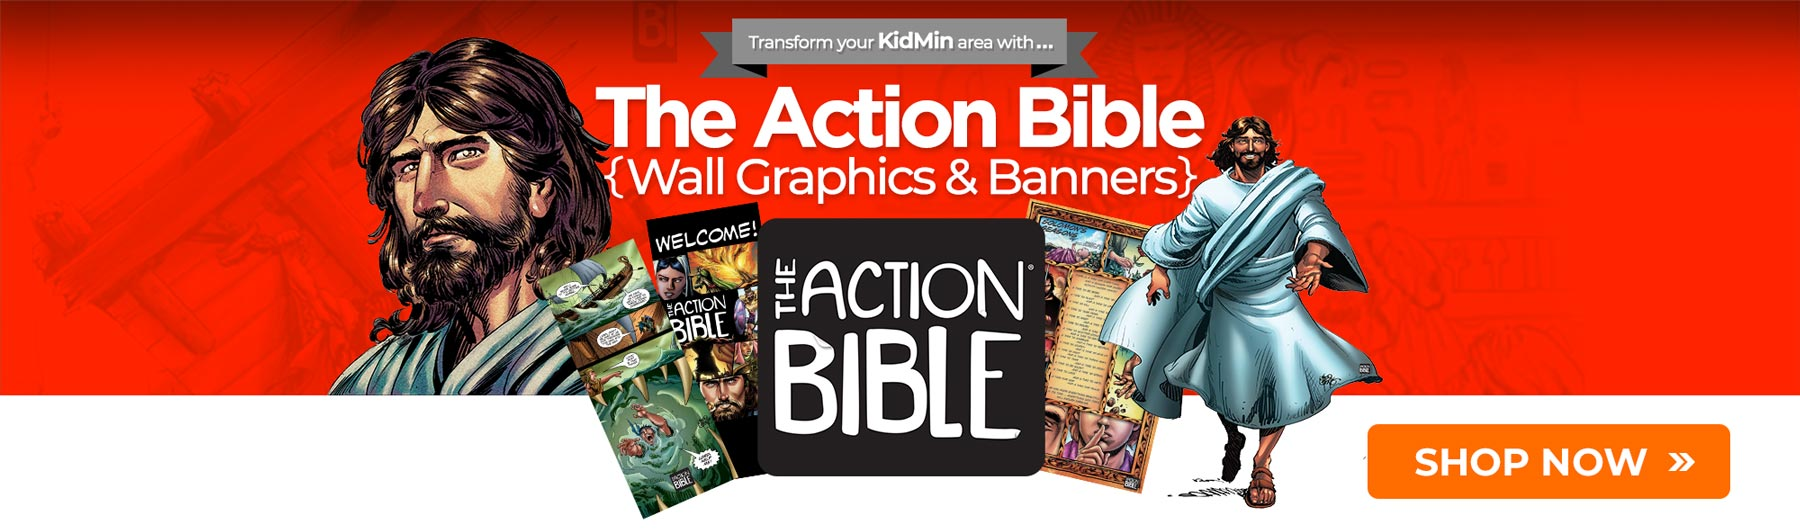 Action Bible posters and resources